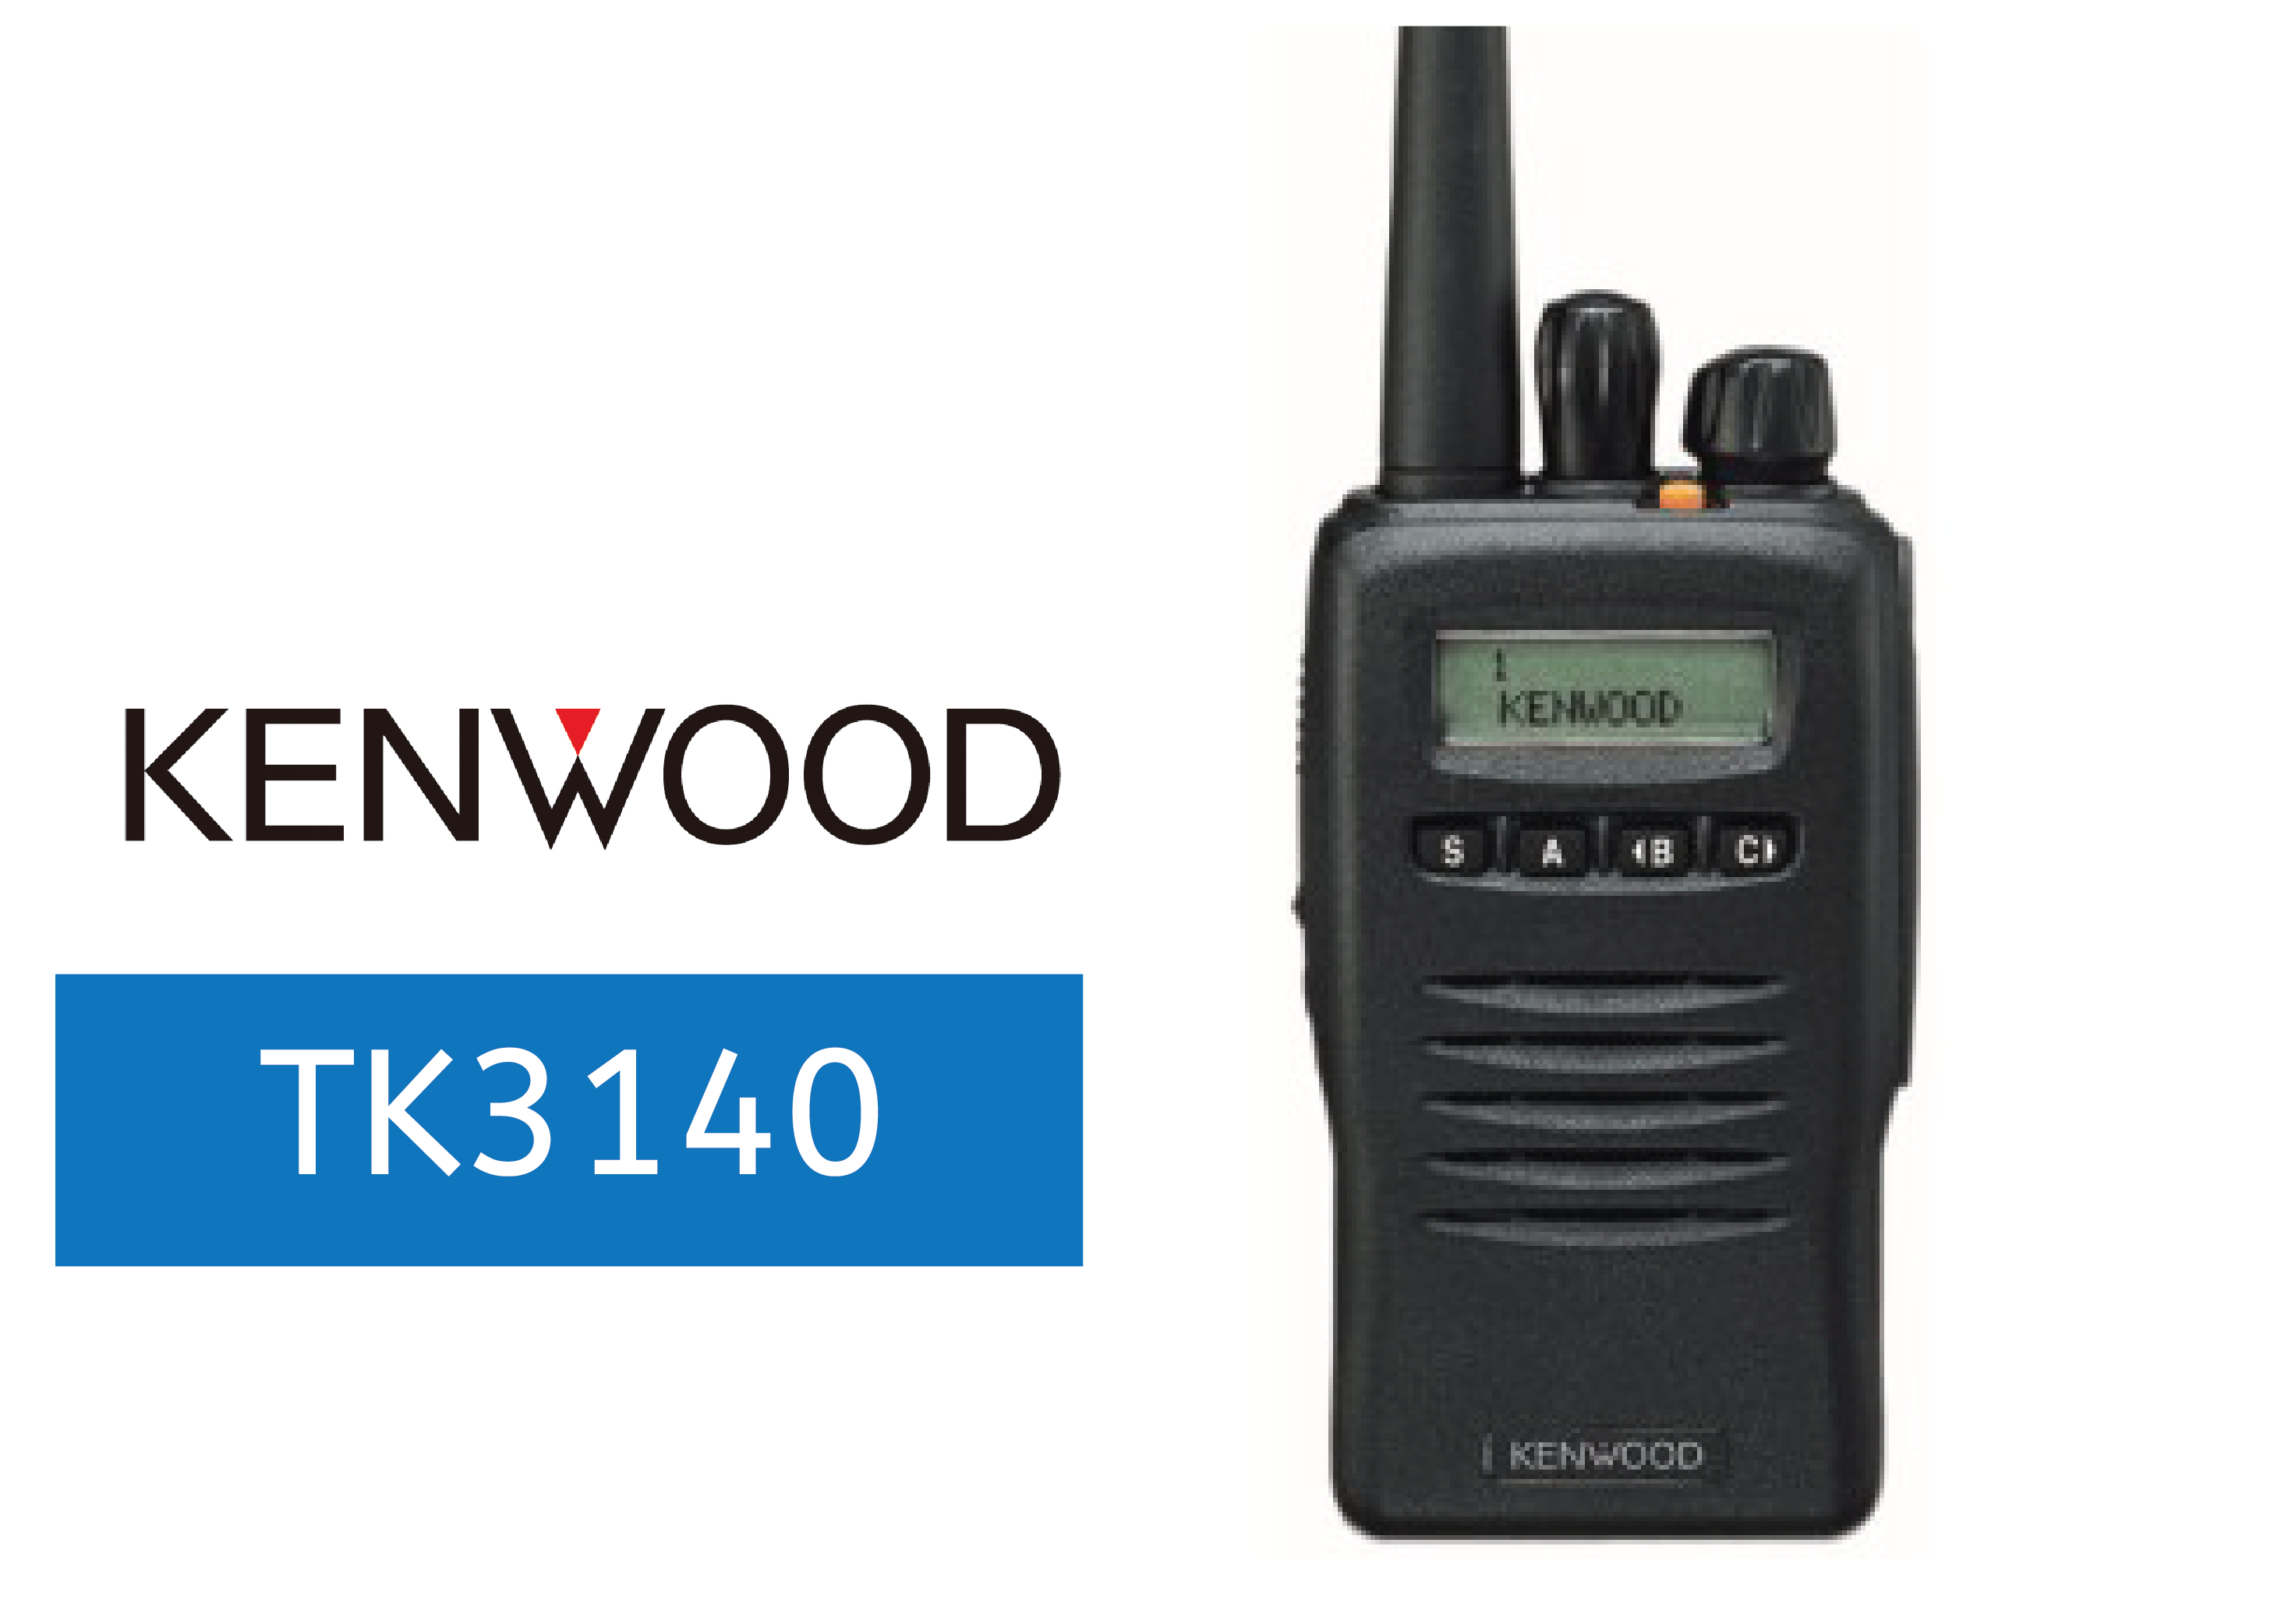 KENWOOD-TK3140-FULL-POWER-RADIO